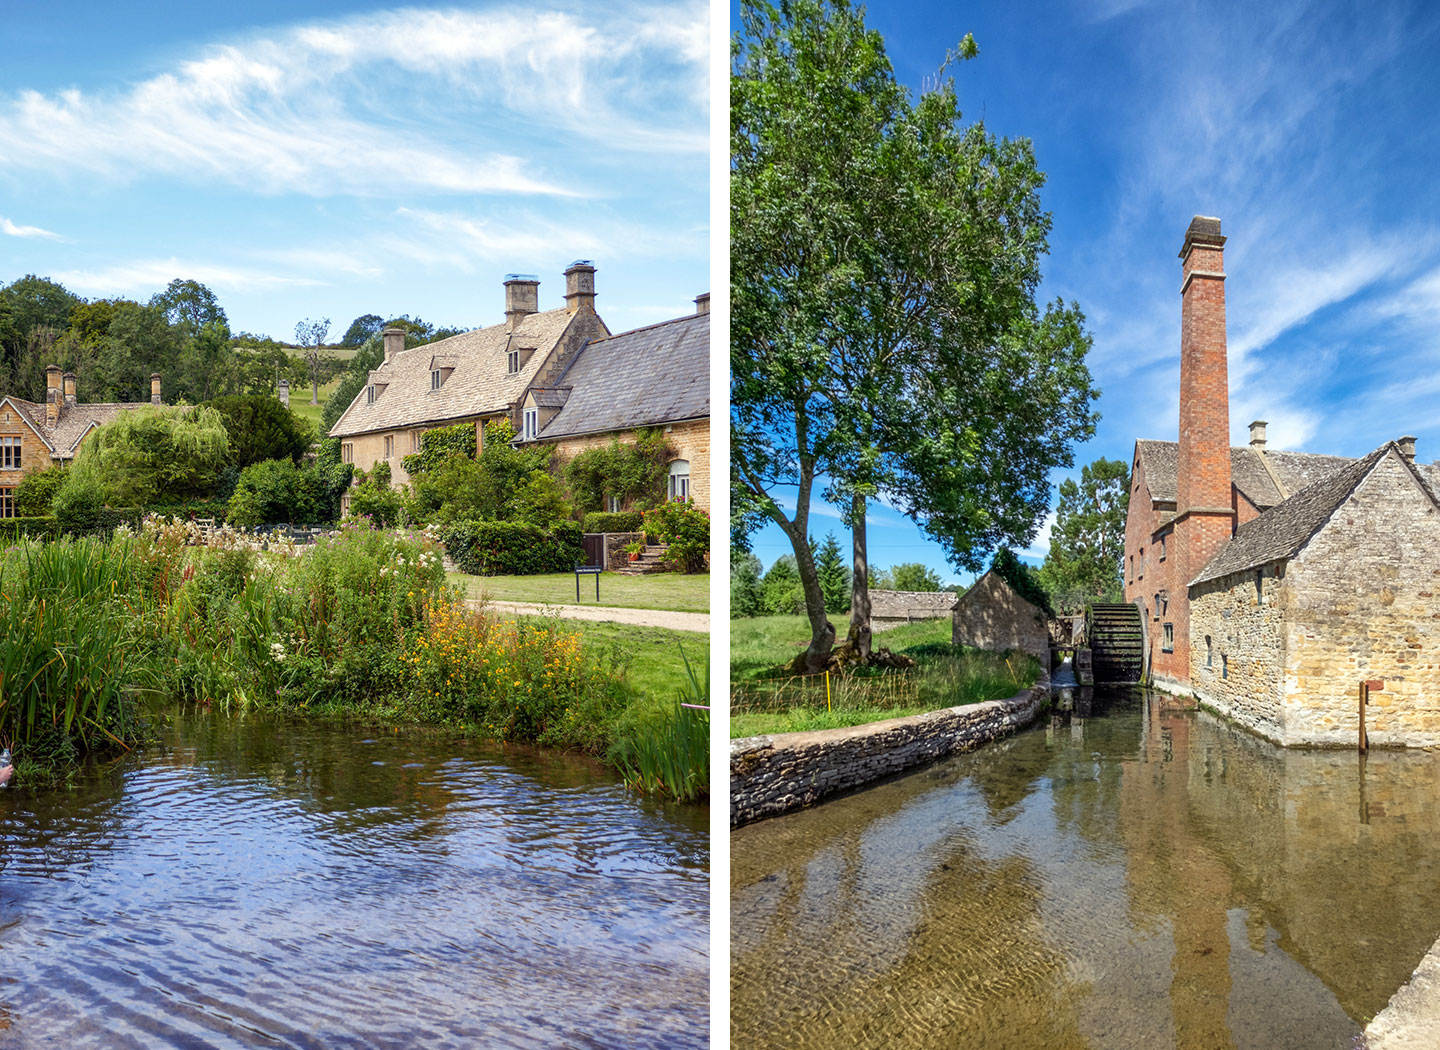 The Cotswold villages of Upper and Lower Slaughter